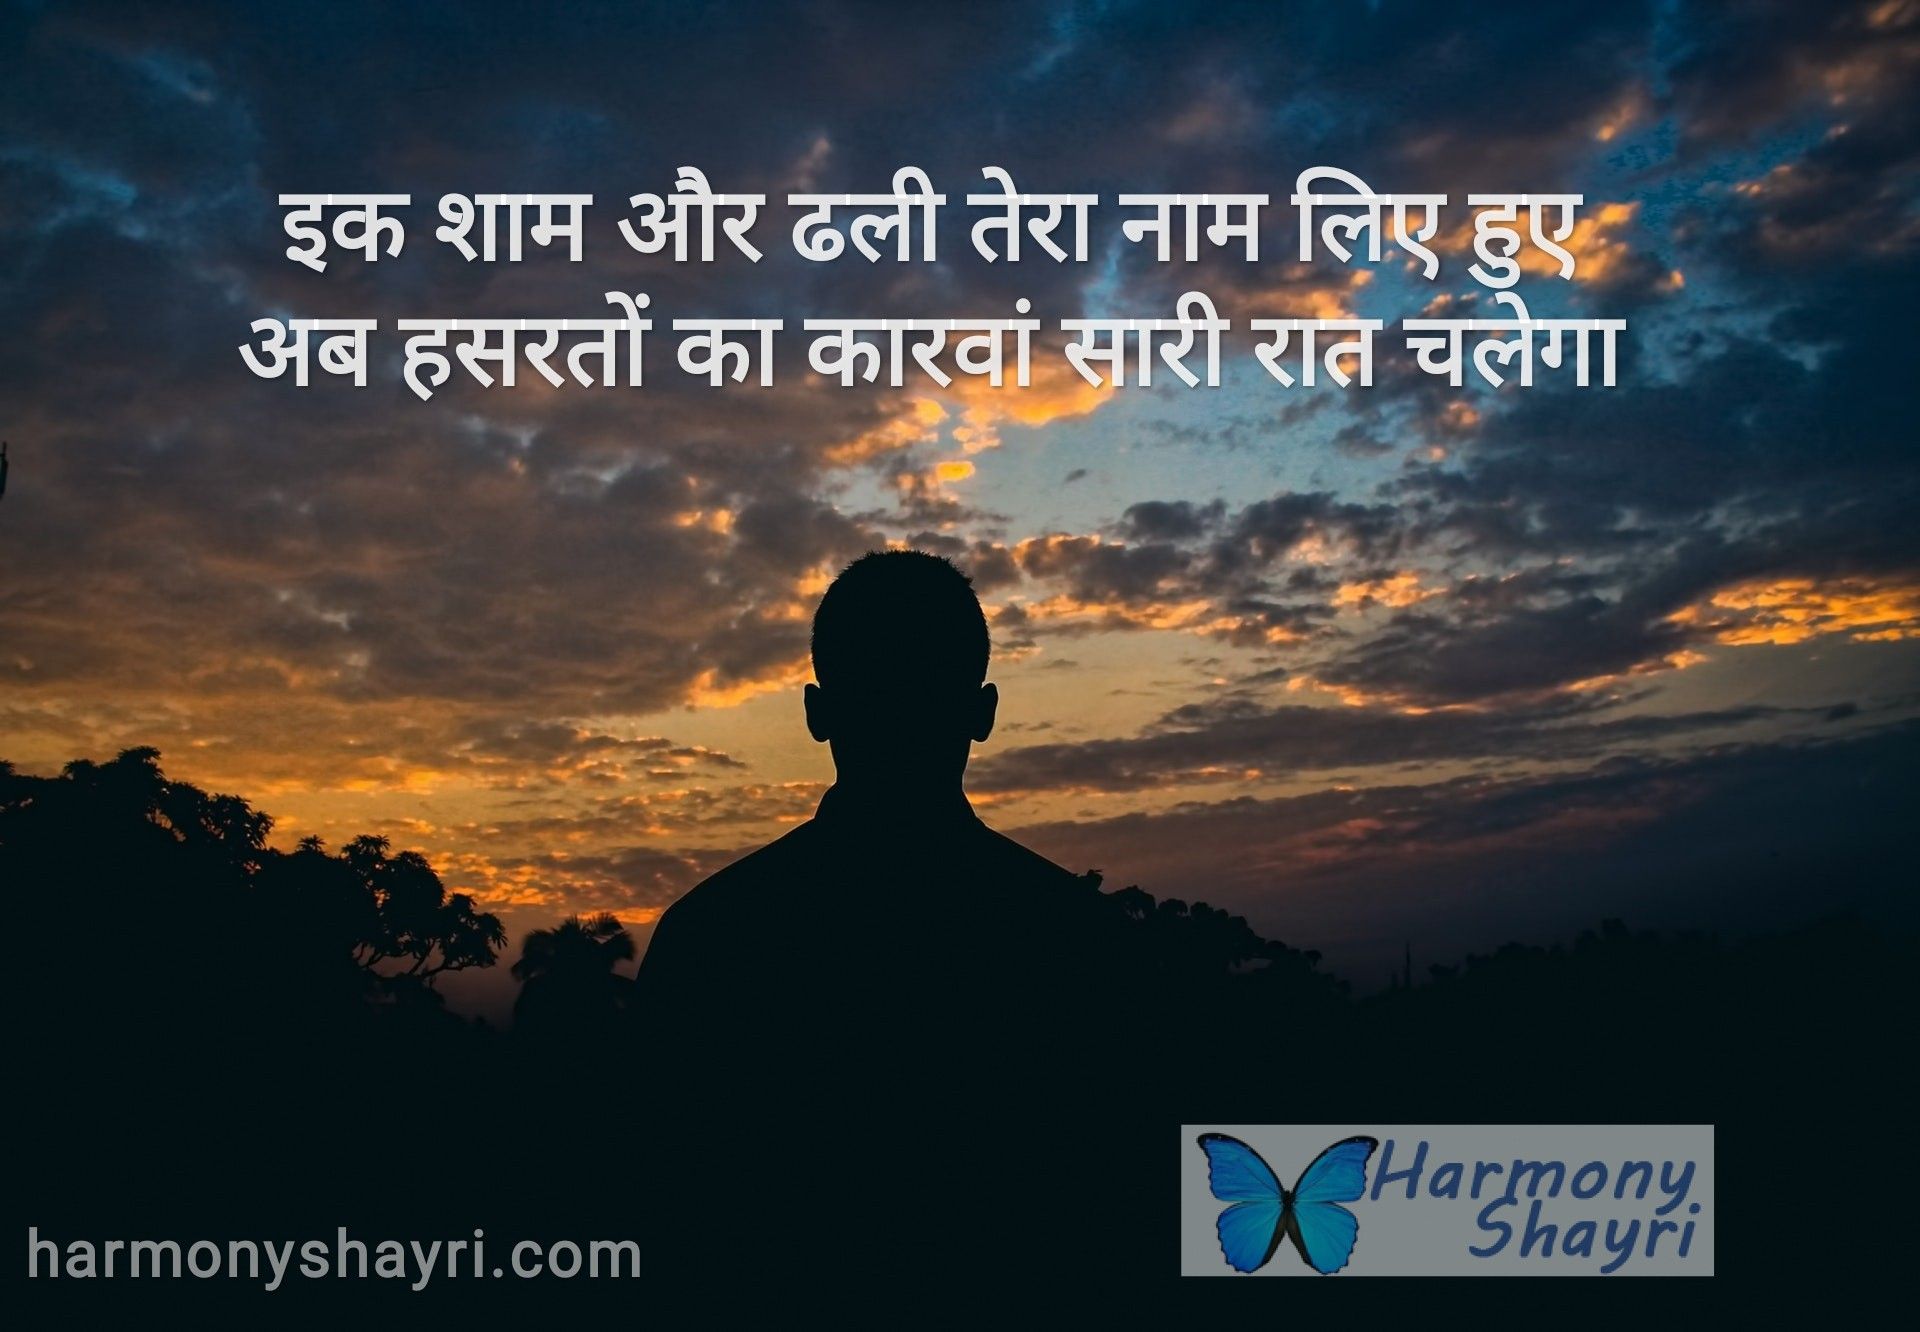 Ek Sham Aur Dhali Tera Naam Liye Hue Top Hindi Shayari Collection Famous Best Hindi Shayari